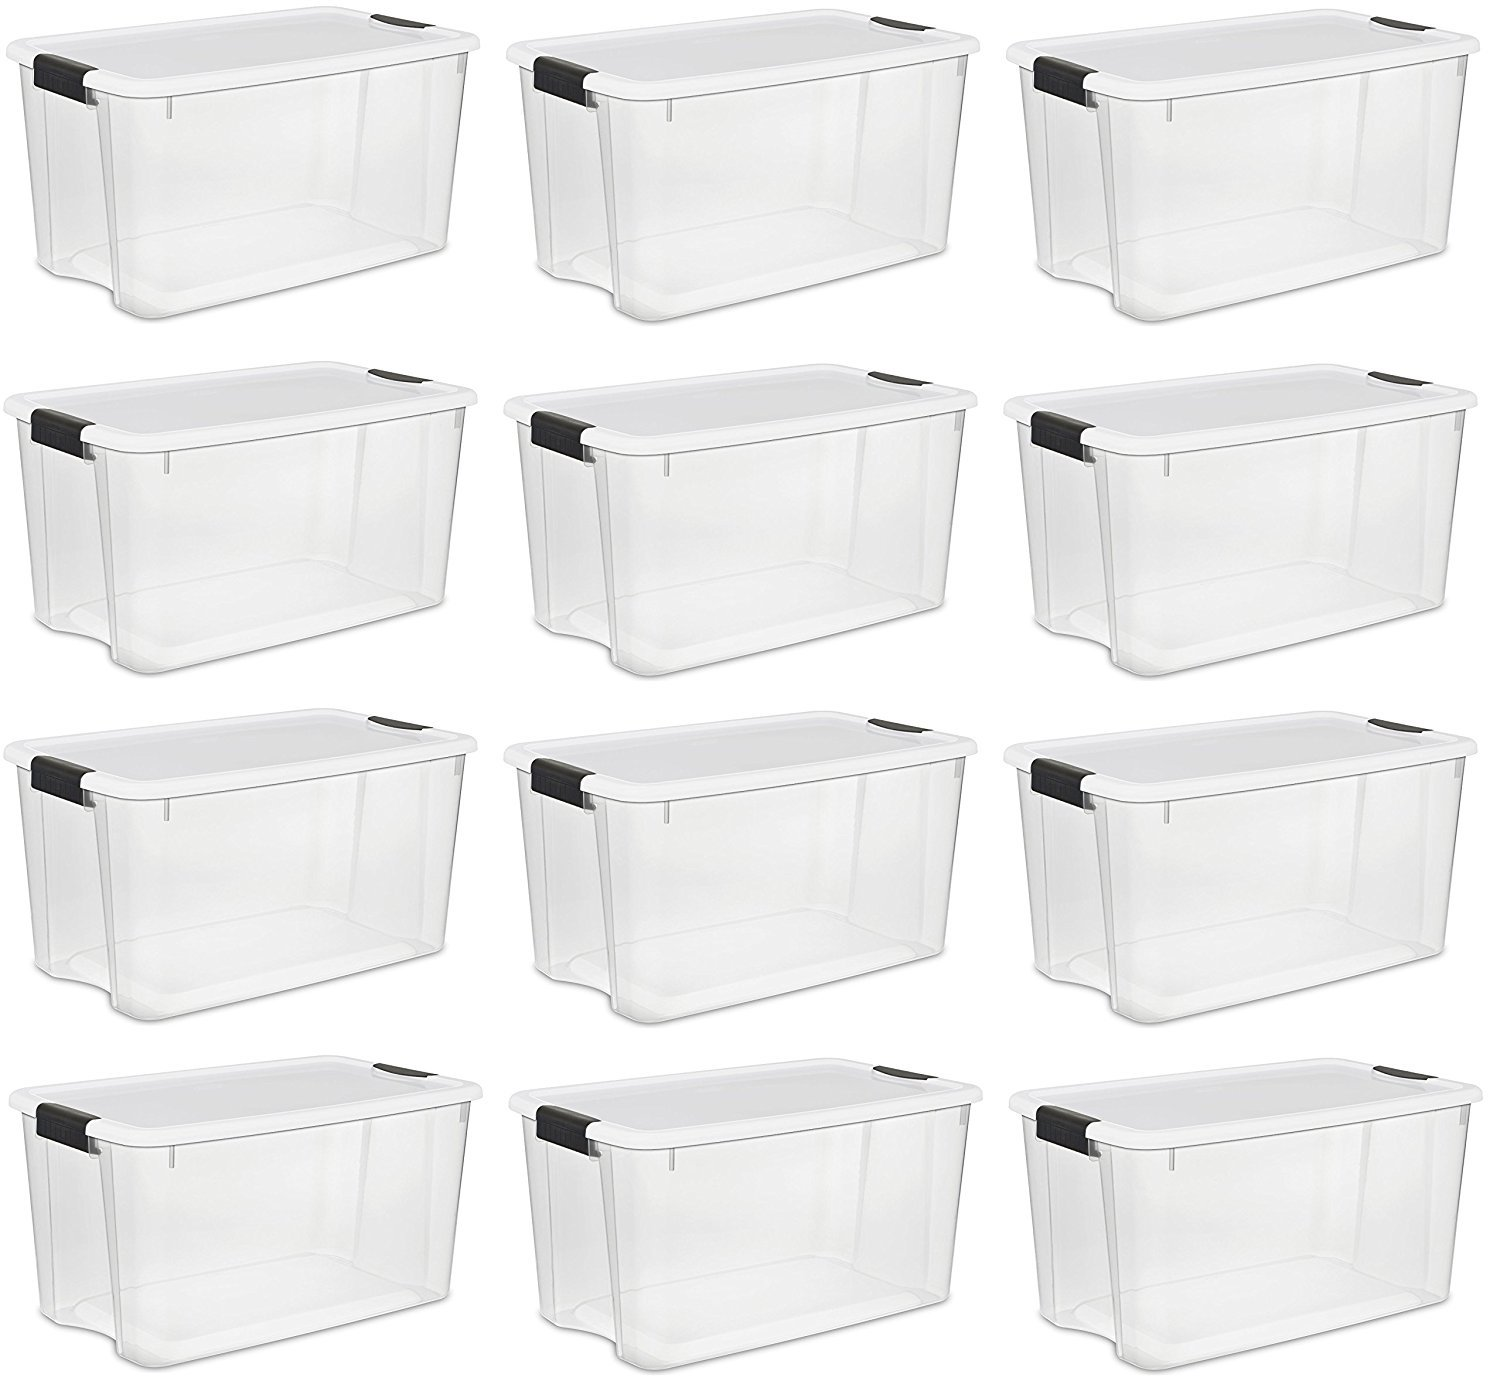 Sterilite 30 Quart/28 Liter Ultra Latch Box, Clear with a White Lid and Black Latches, 12-Boxes